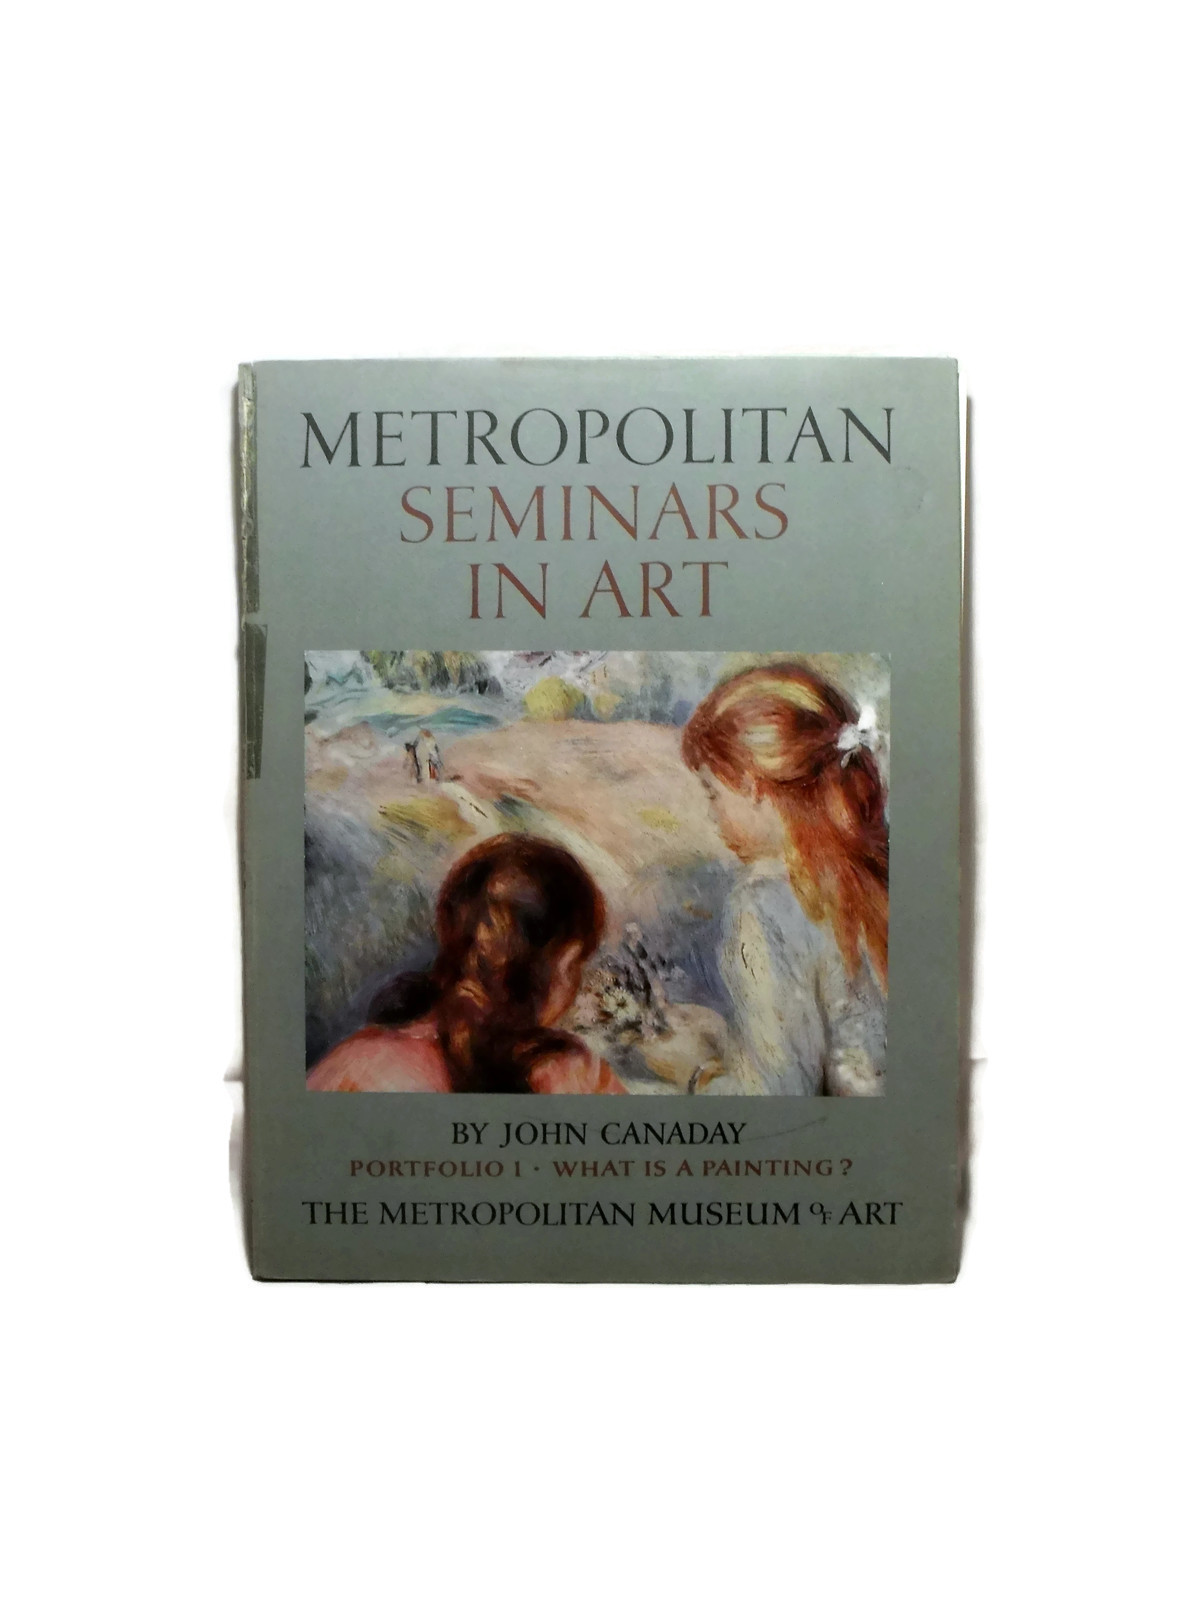 METROPOLITAN SEMINARS IN ART Book BY JOHN CANADAY 1958 VOLUME 1 12 Prints